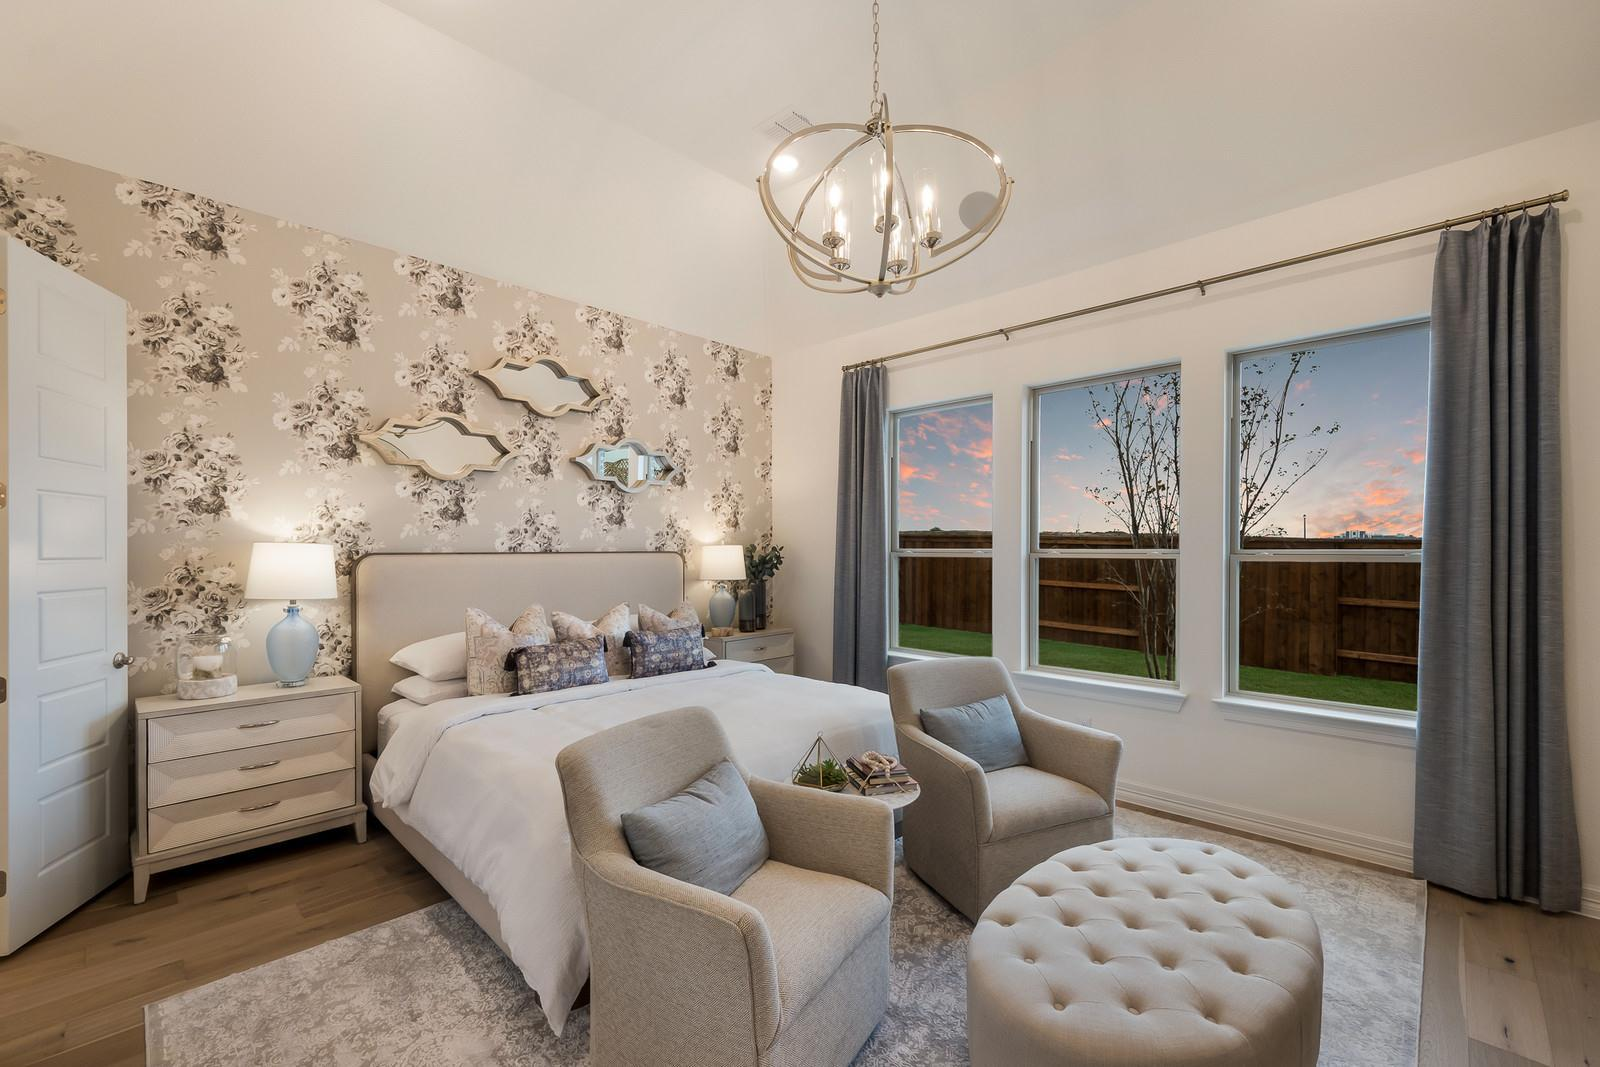 Bedroom featured in the Bella Rose 6201 By Risland Homes in Dallas, TX